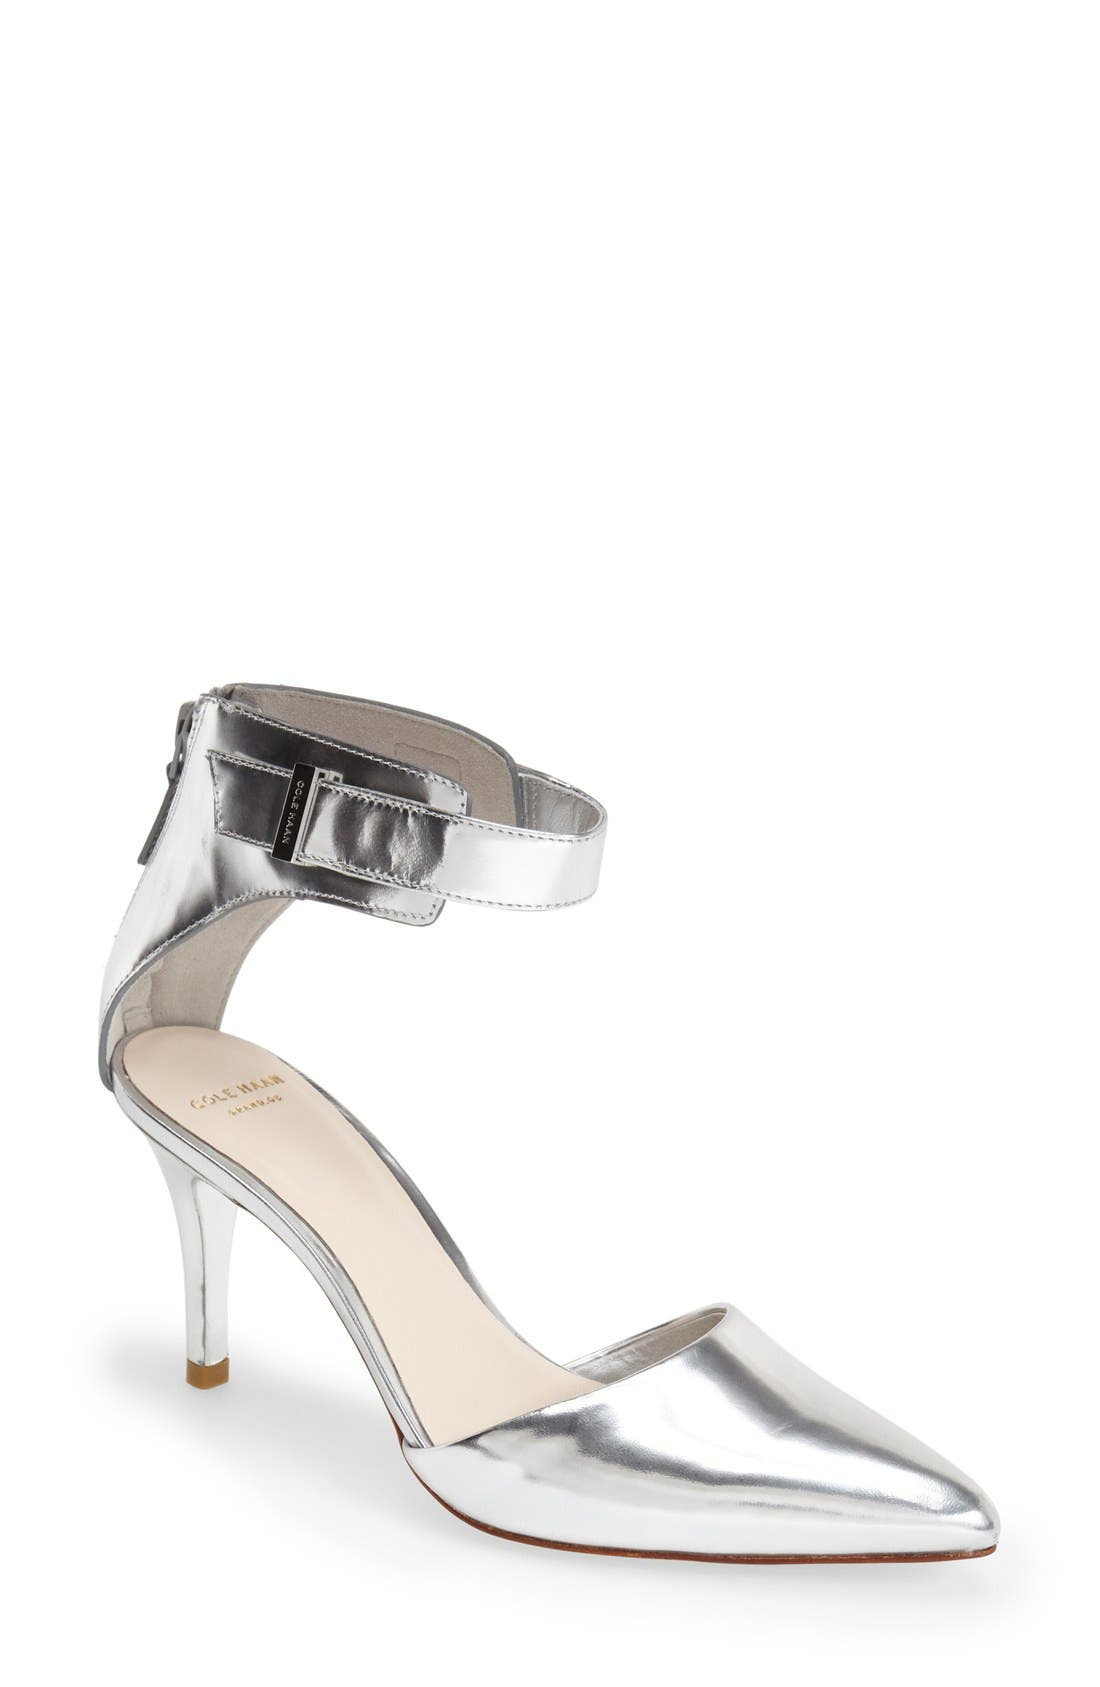 Main Image - Cole Haan 'Highline' Ankle Strap Pump (Women)